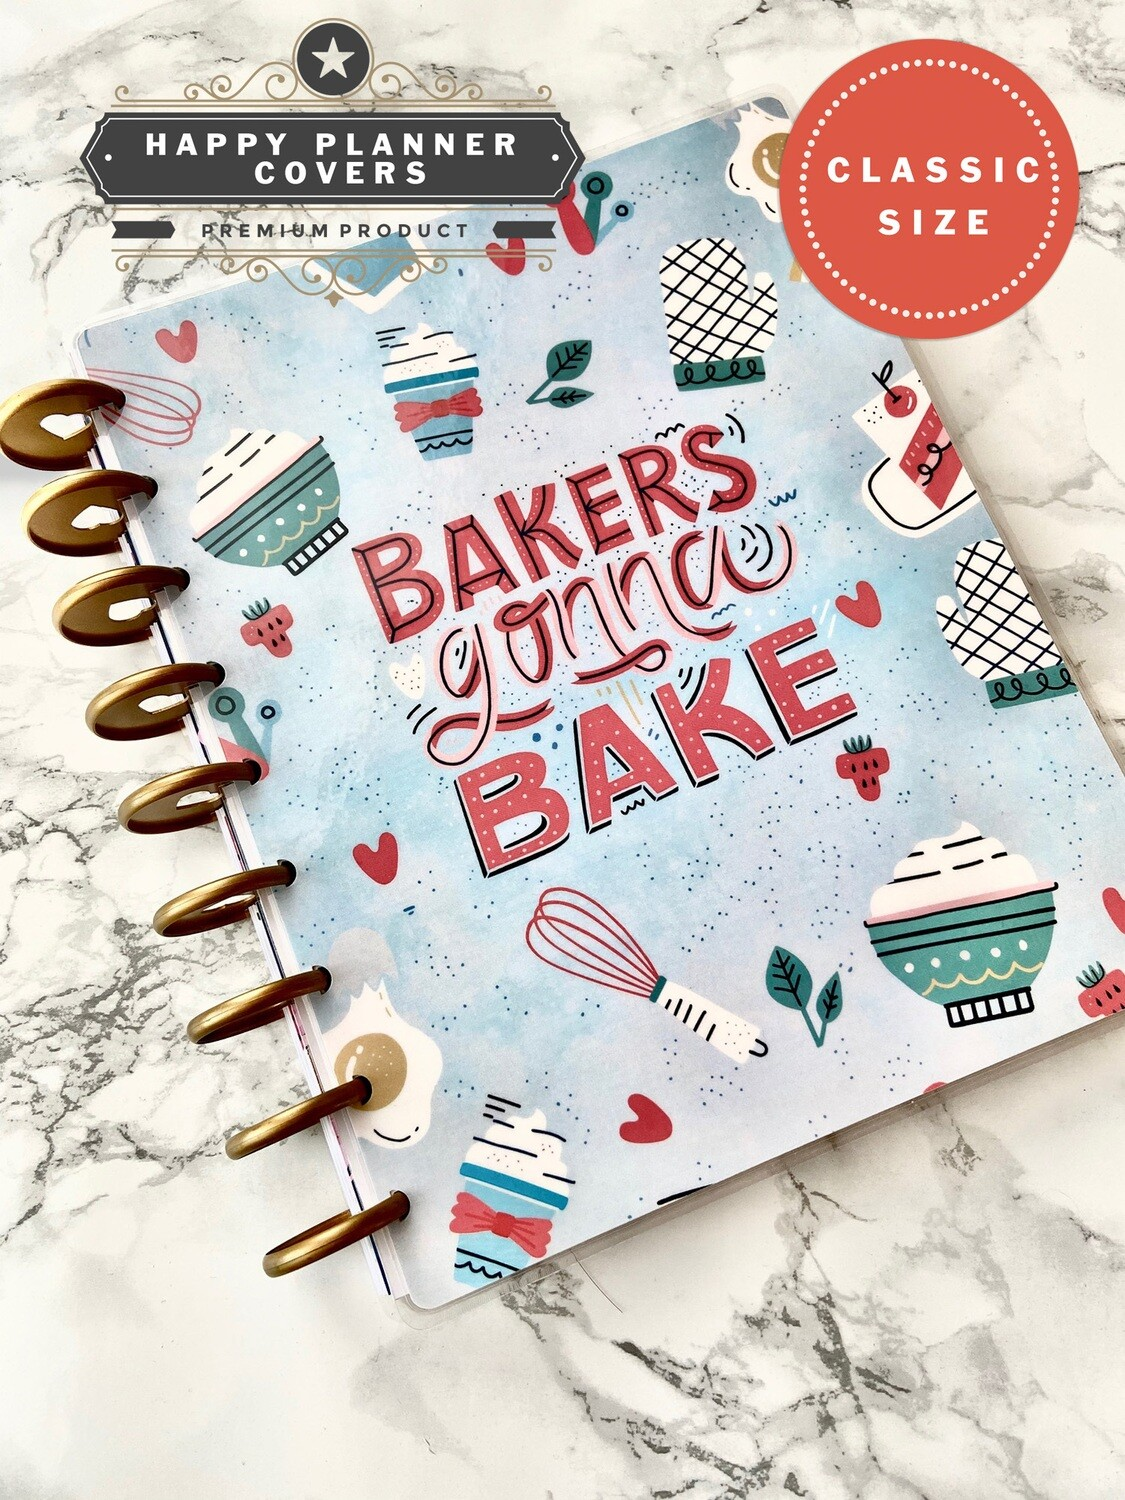 Bakers Gonna Bake Happy Planner Classic Size Cover | Cute Baking White Modern Recipe Journal